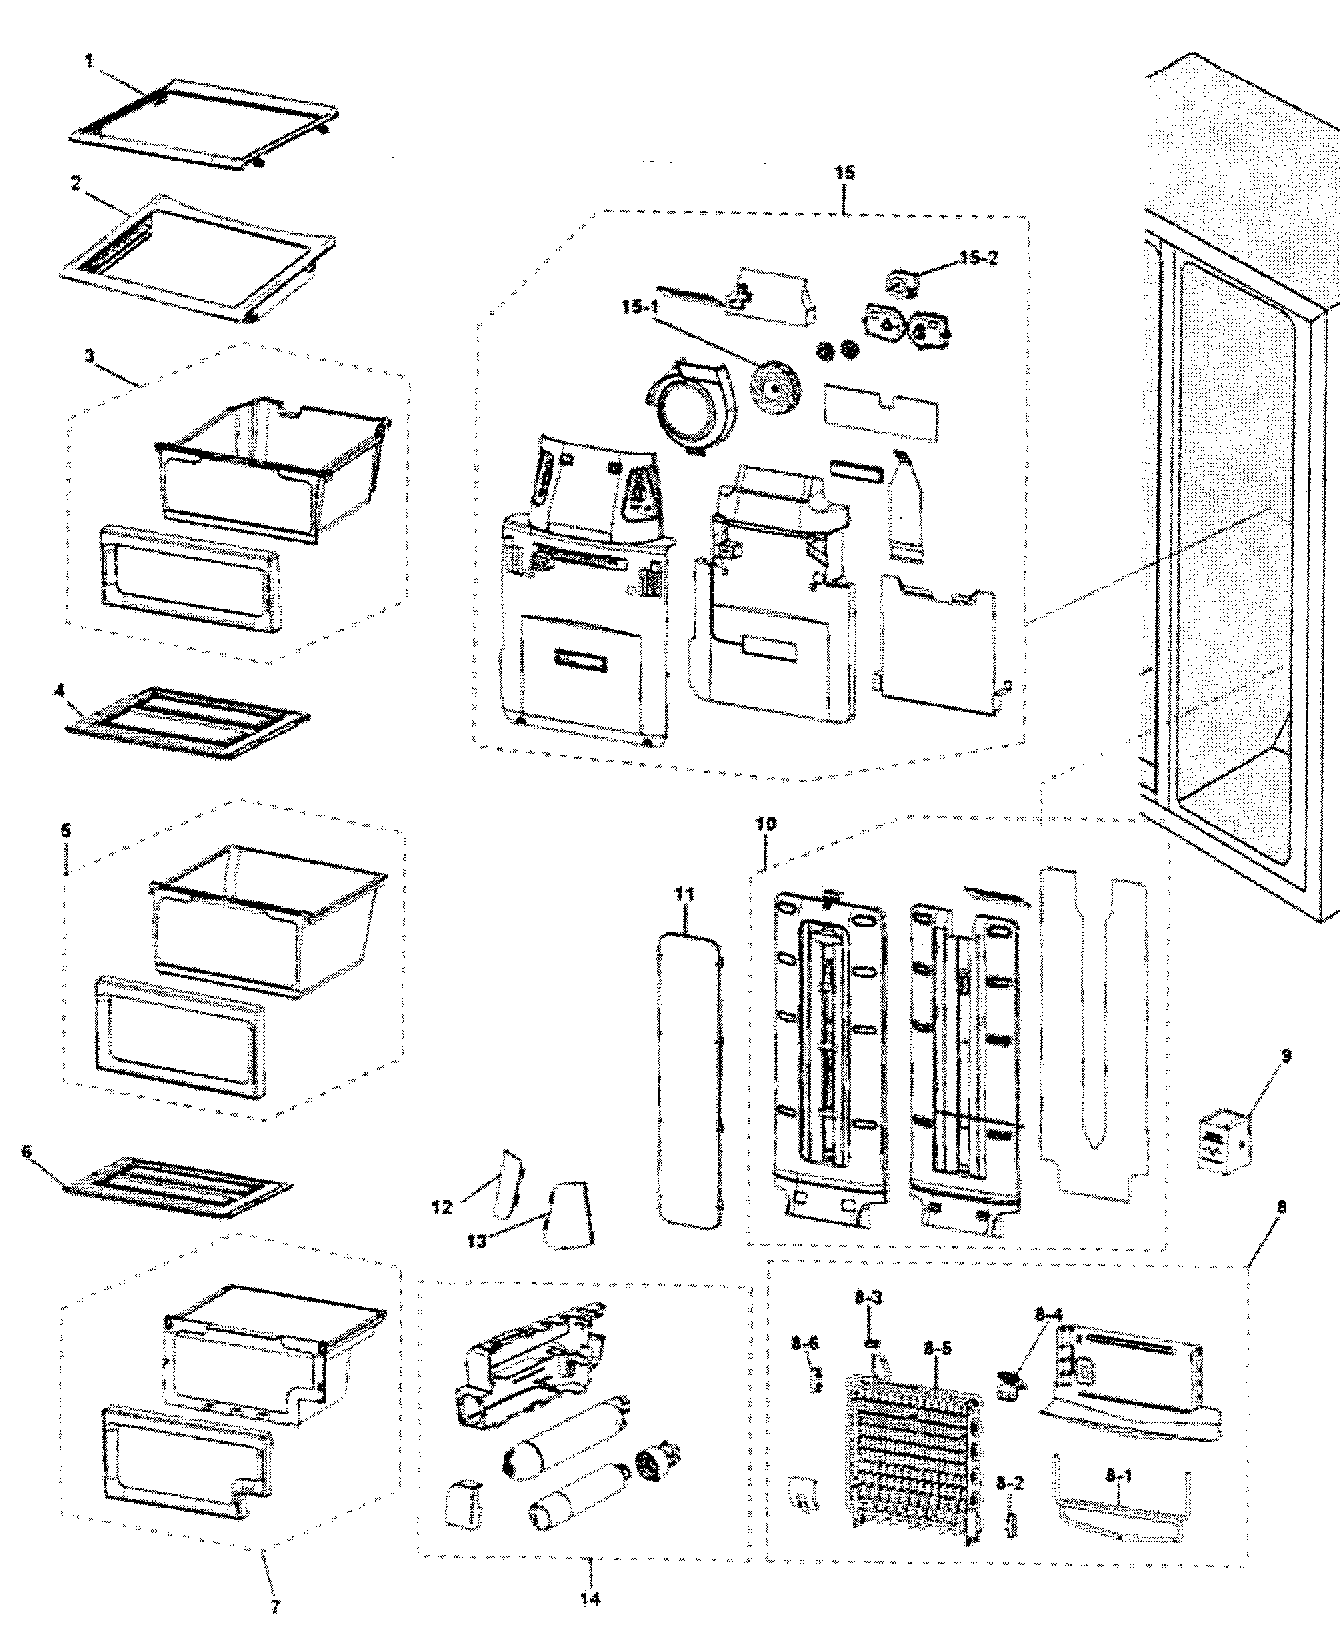 REFRIGERATOR Diagram & Parts List for Model rs263tdrsxaa